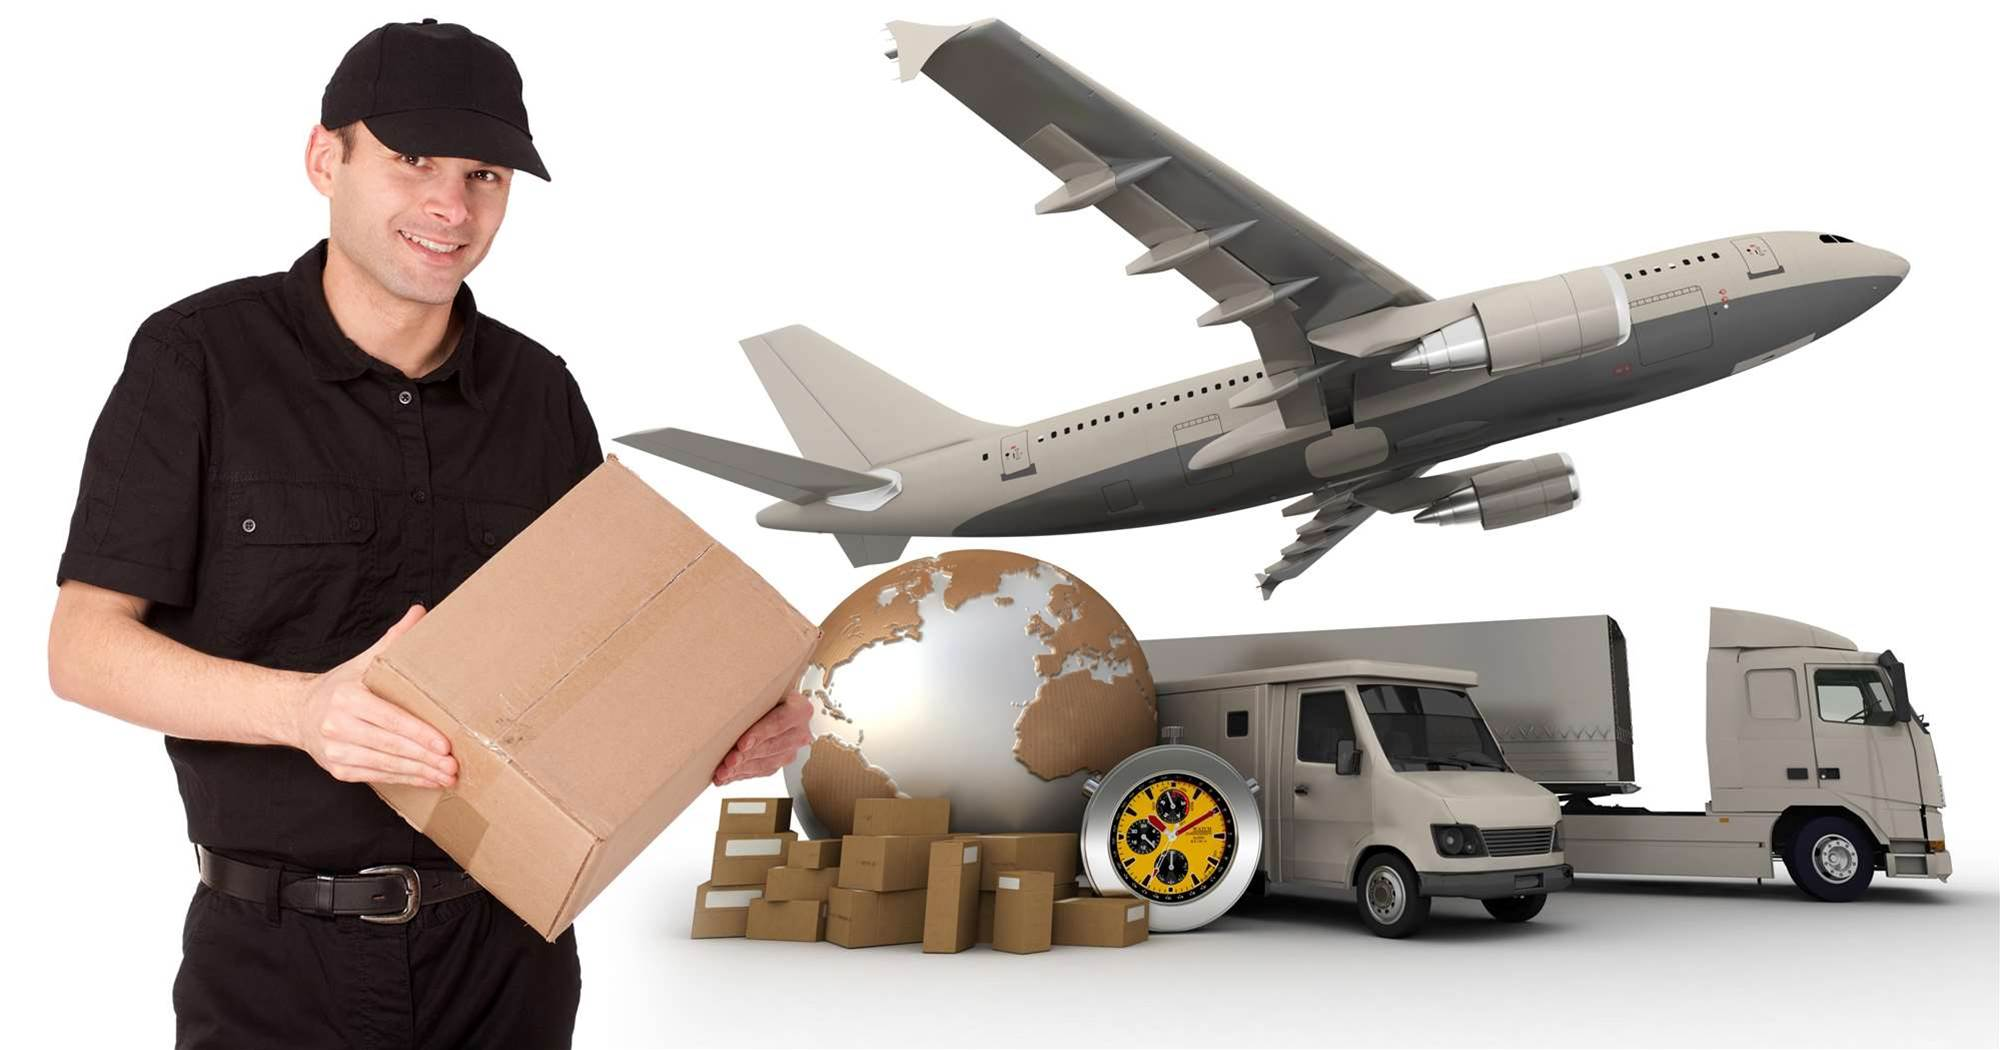 A New Shipping Service to Help Small Business